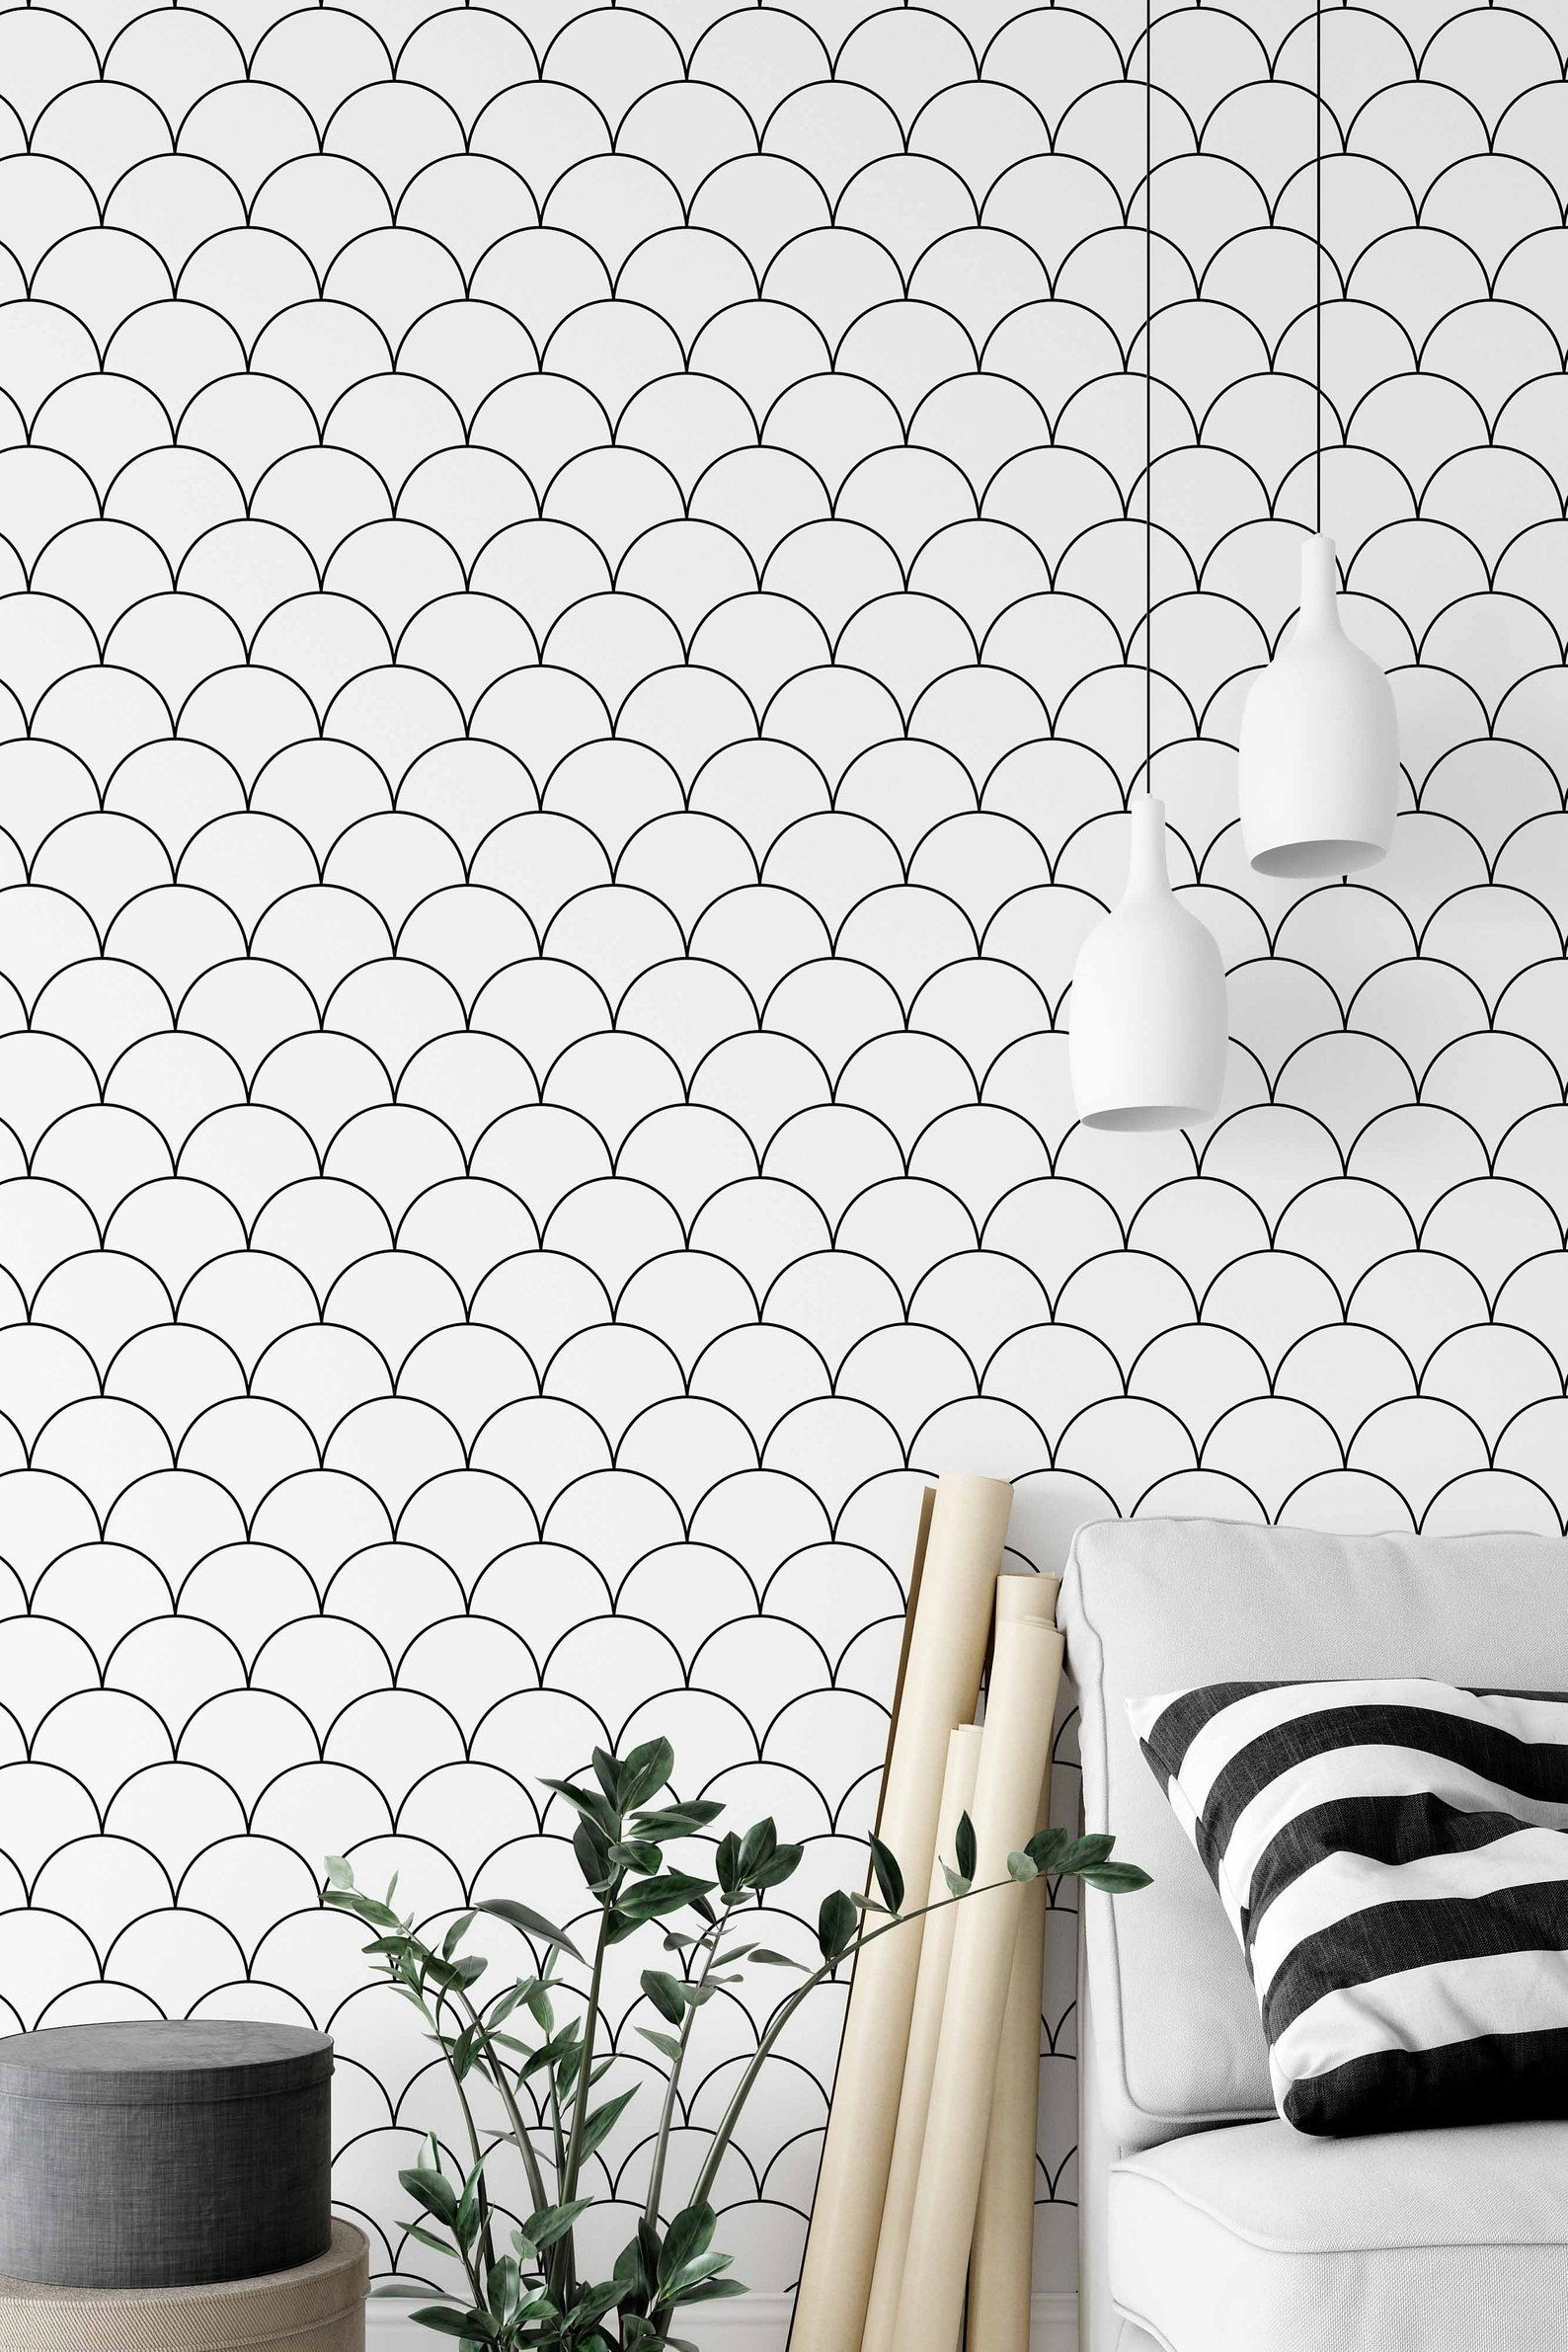 Wallpaper With Scallop Pattern Black And White Removable Etsy Removable Wallpaper Scandinavian Wallpaper Minimalist Pattern